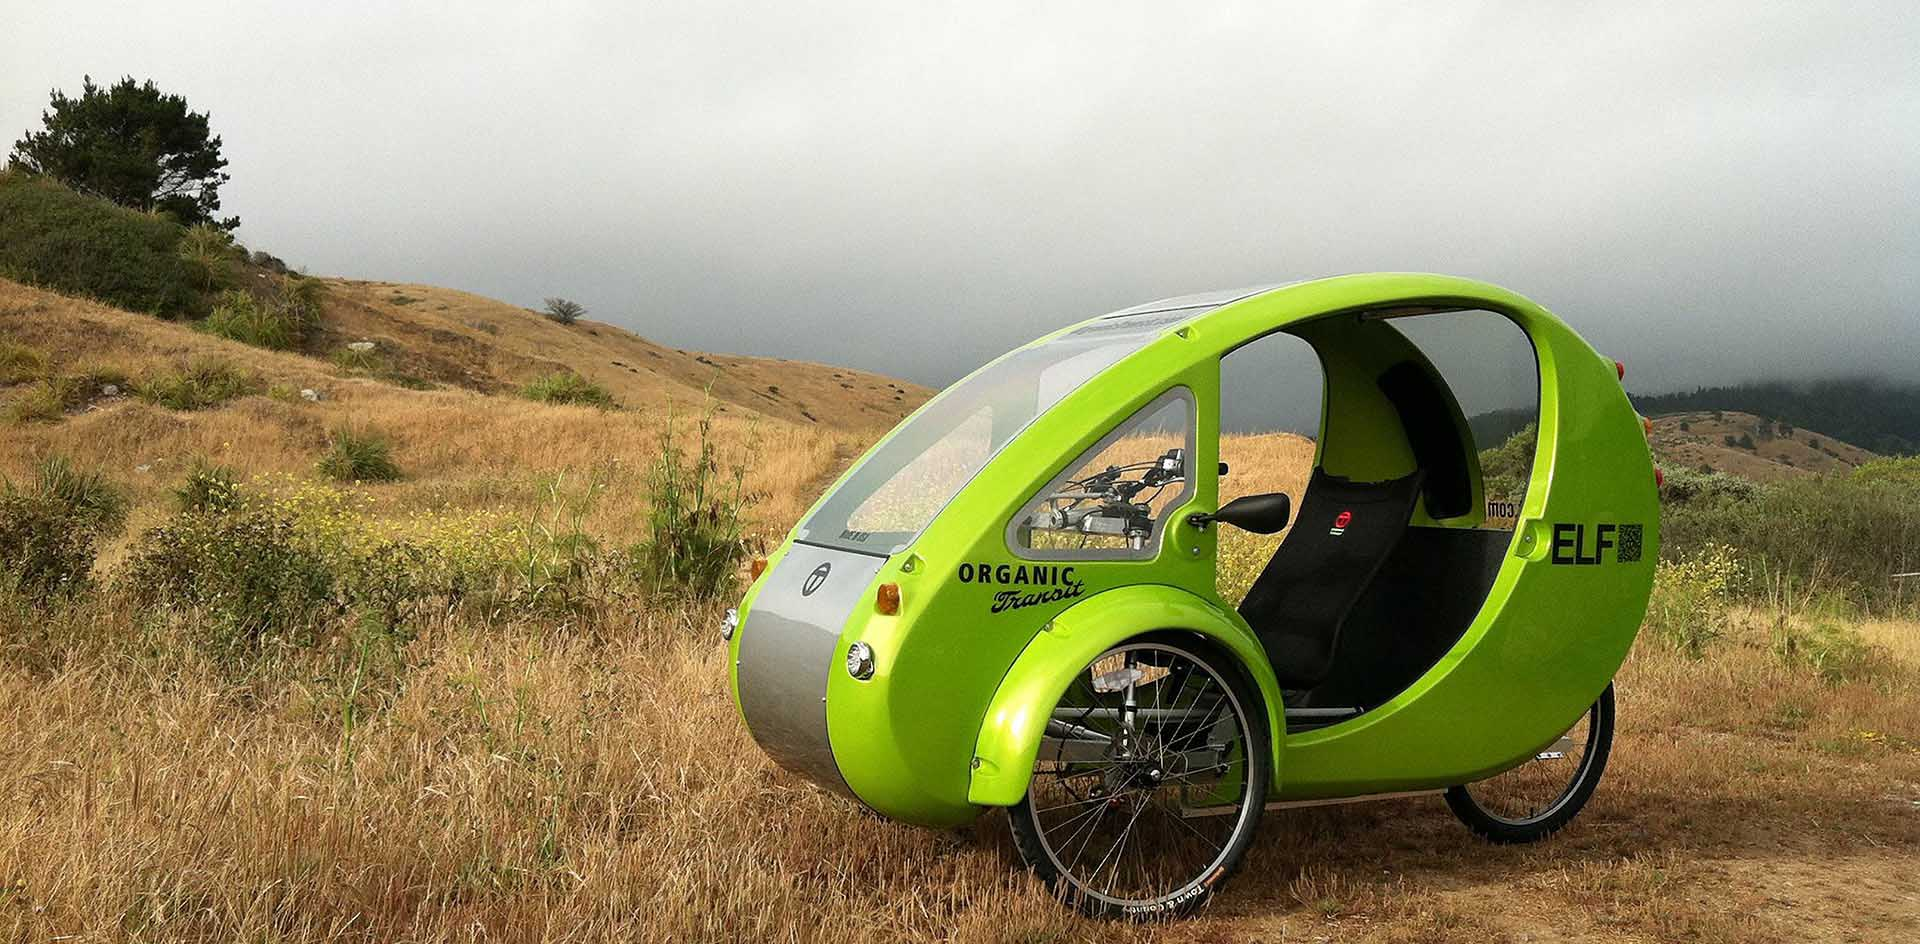 Elf Tricycle Is A Pedal Solar Electric Assist Eco Commuter Cars On Pinterest Powered Car And